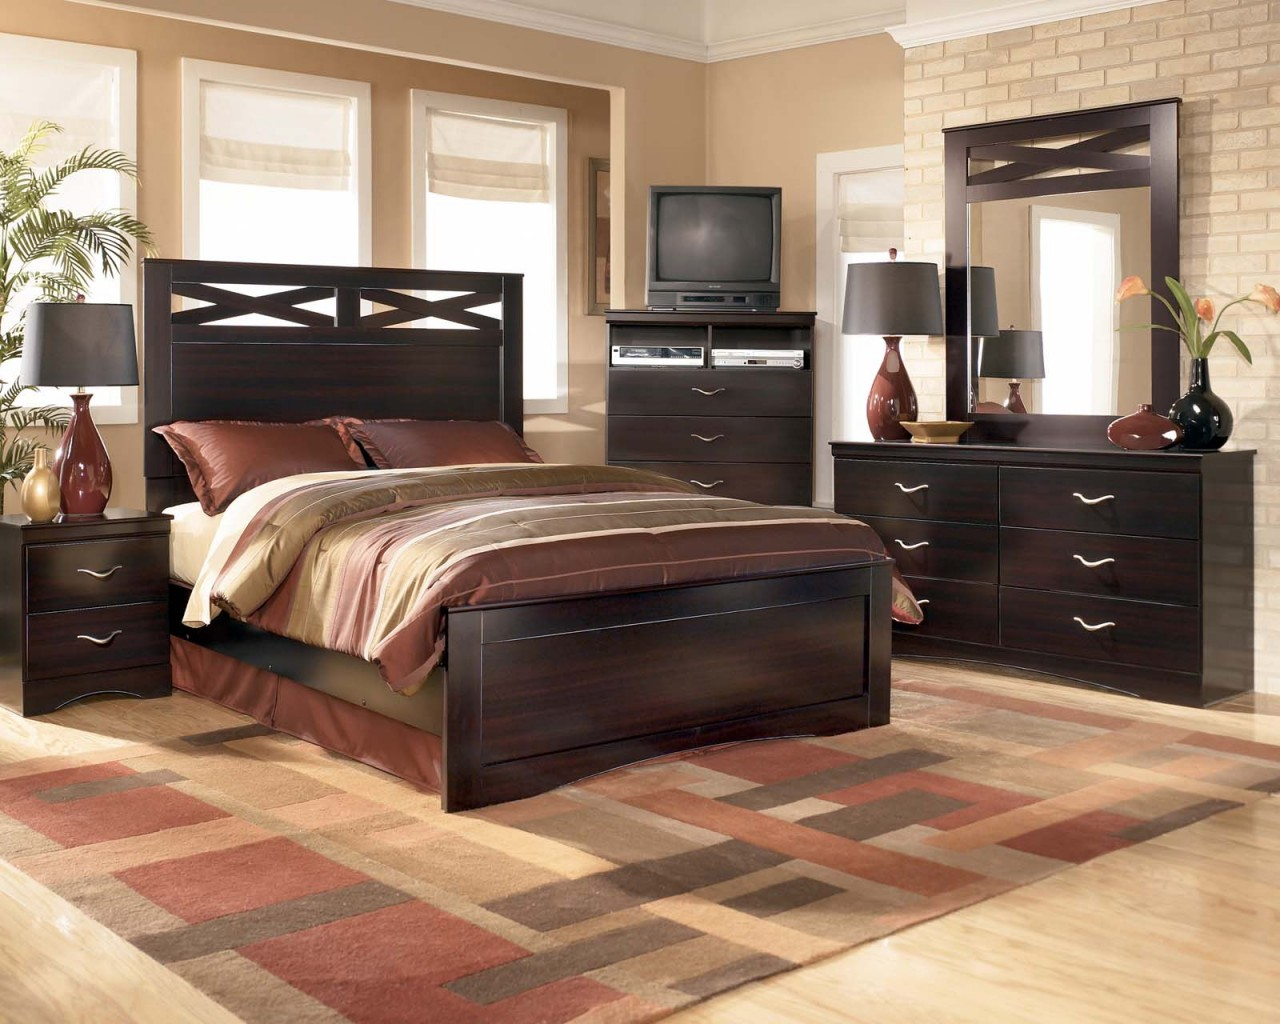 Bedroom Sets  Taking Modern Art to Bed  The WoW Style